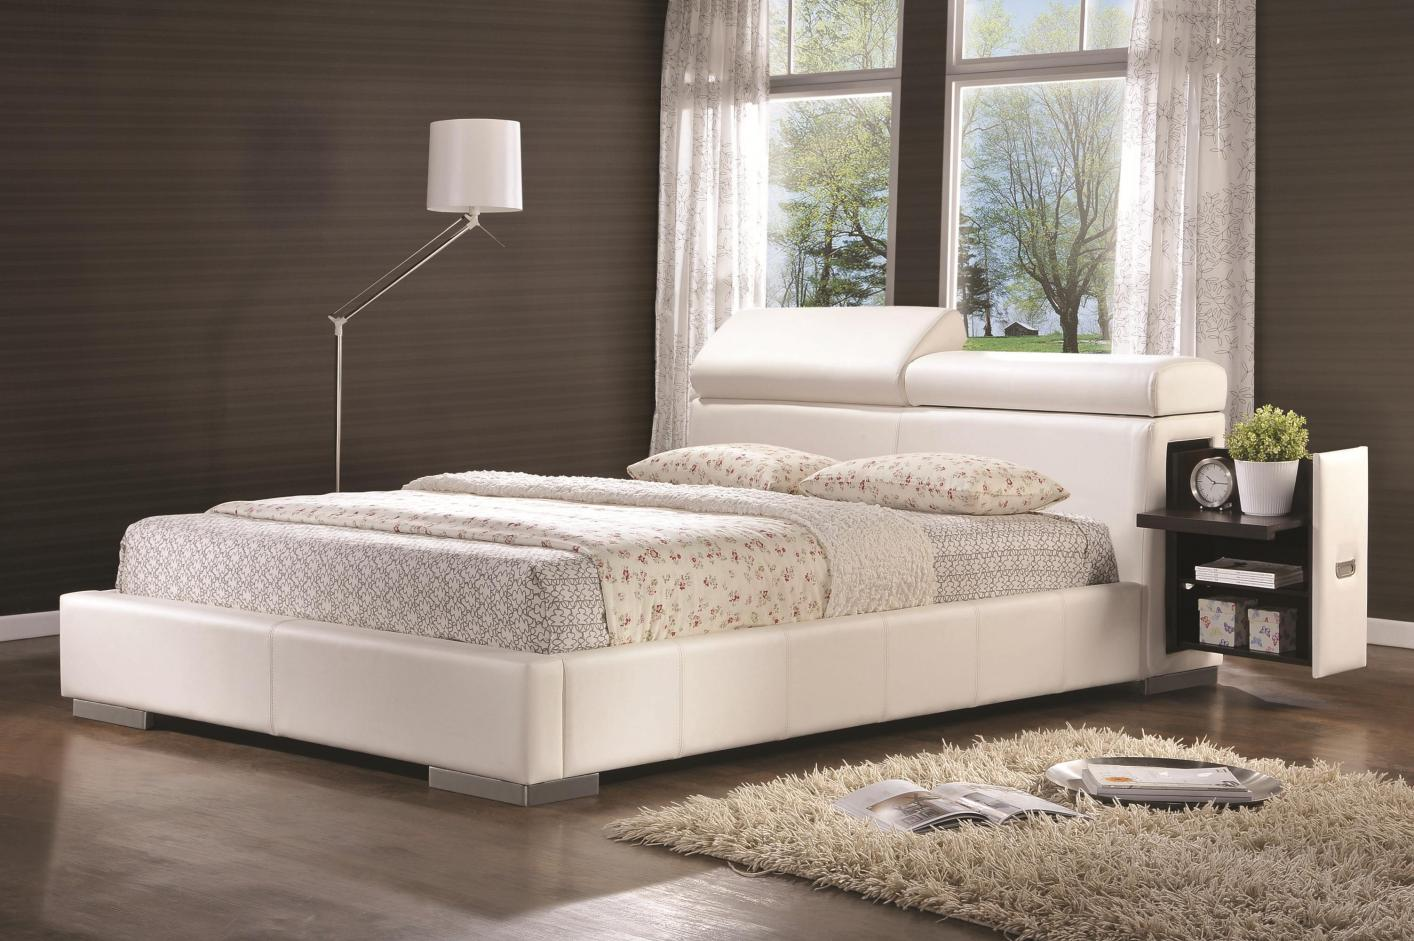 White Leather Bed StealASofa Furniture Outlet Los Angeles CA